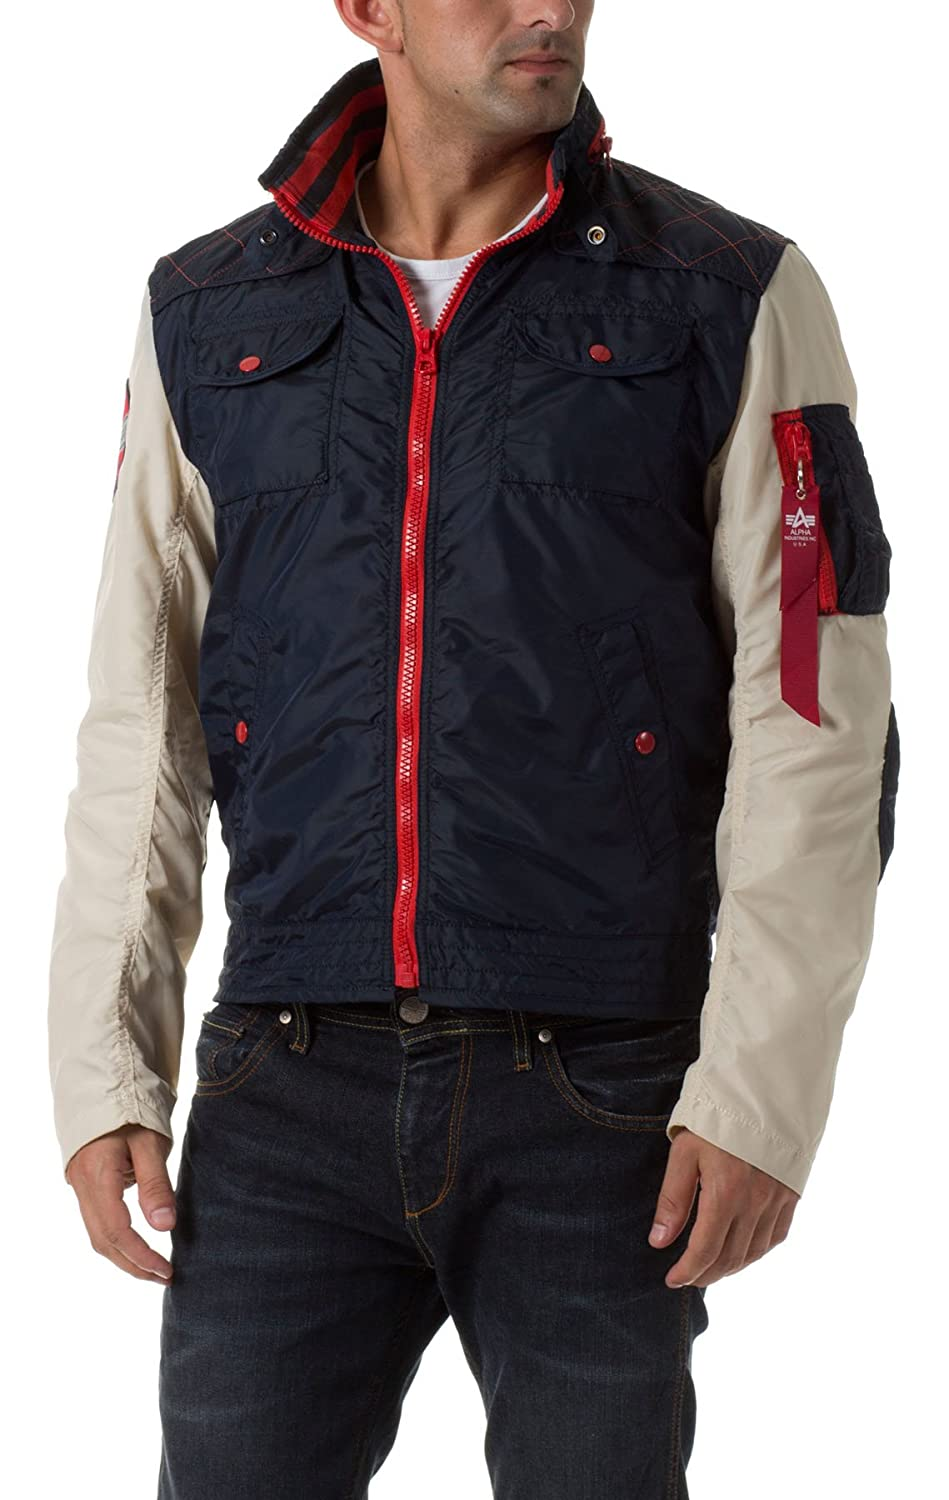 Alpha Industries MC Club Jacket Übergangsjacke Bla bestellen